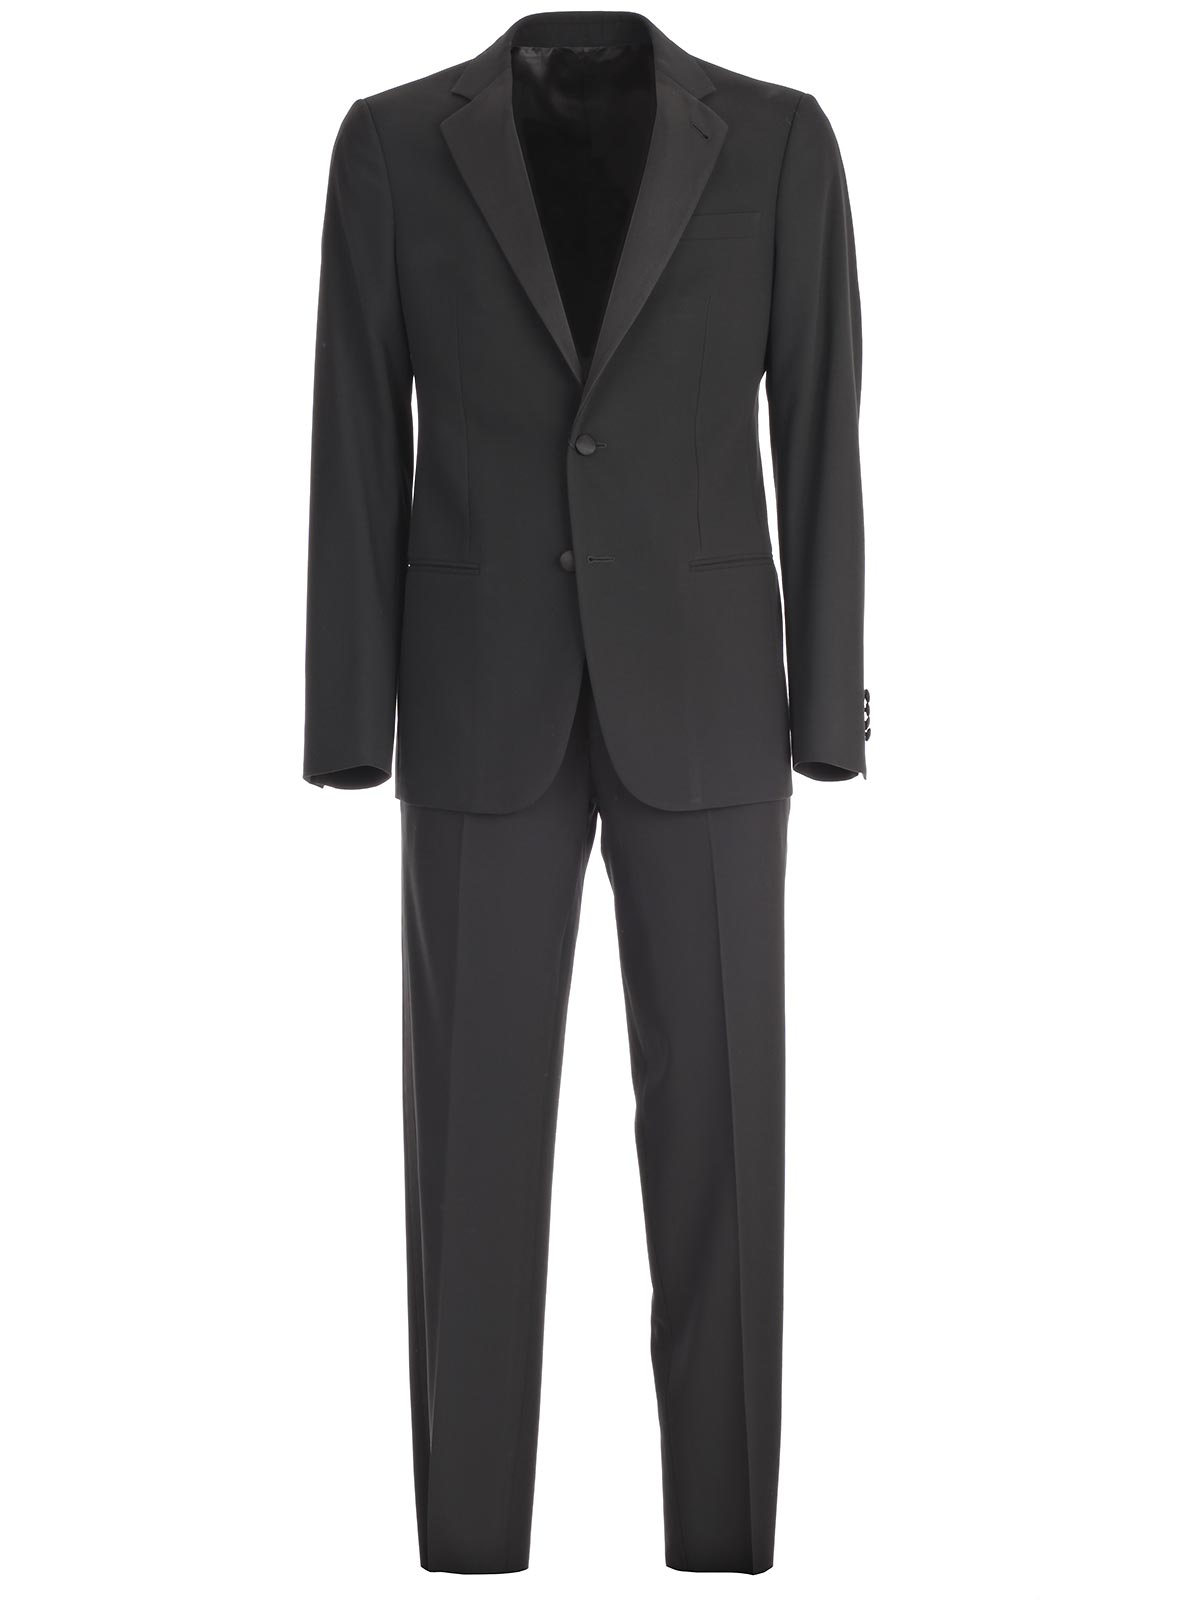 Picture of GIORGIO ARMANI Suits